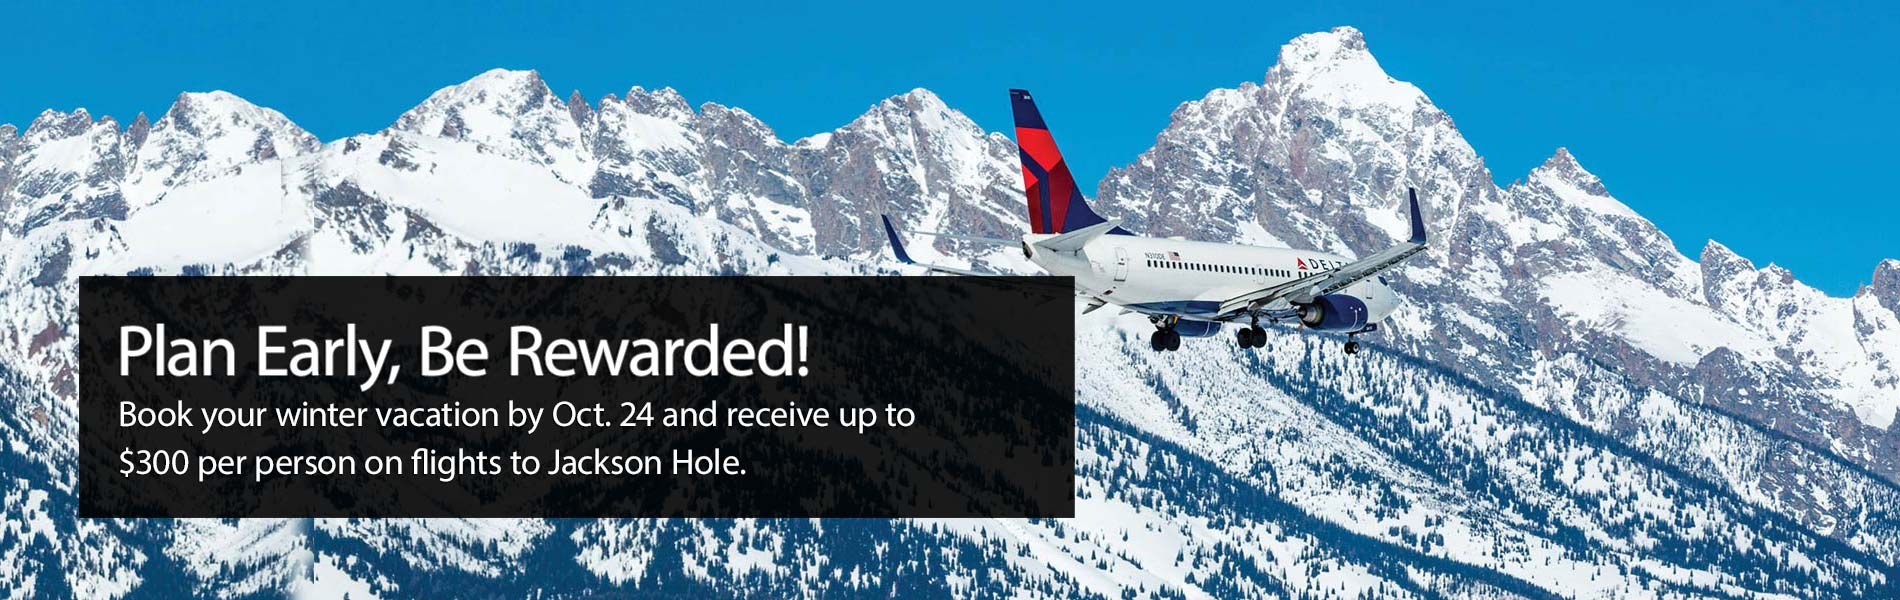 Plan Early, Be Rewarded. Book your winter vacation by Oct. 24 and receive up to $300 per person on flights to Jackson Hole.